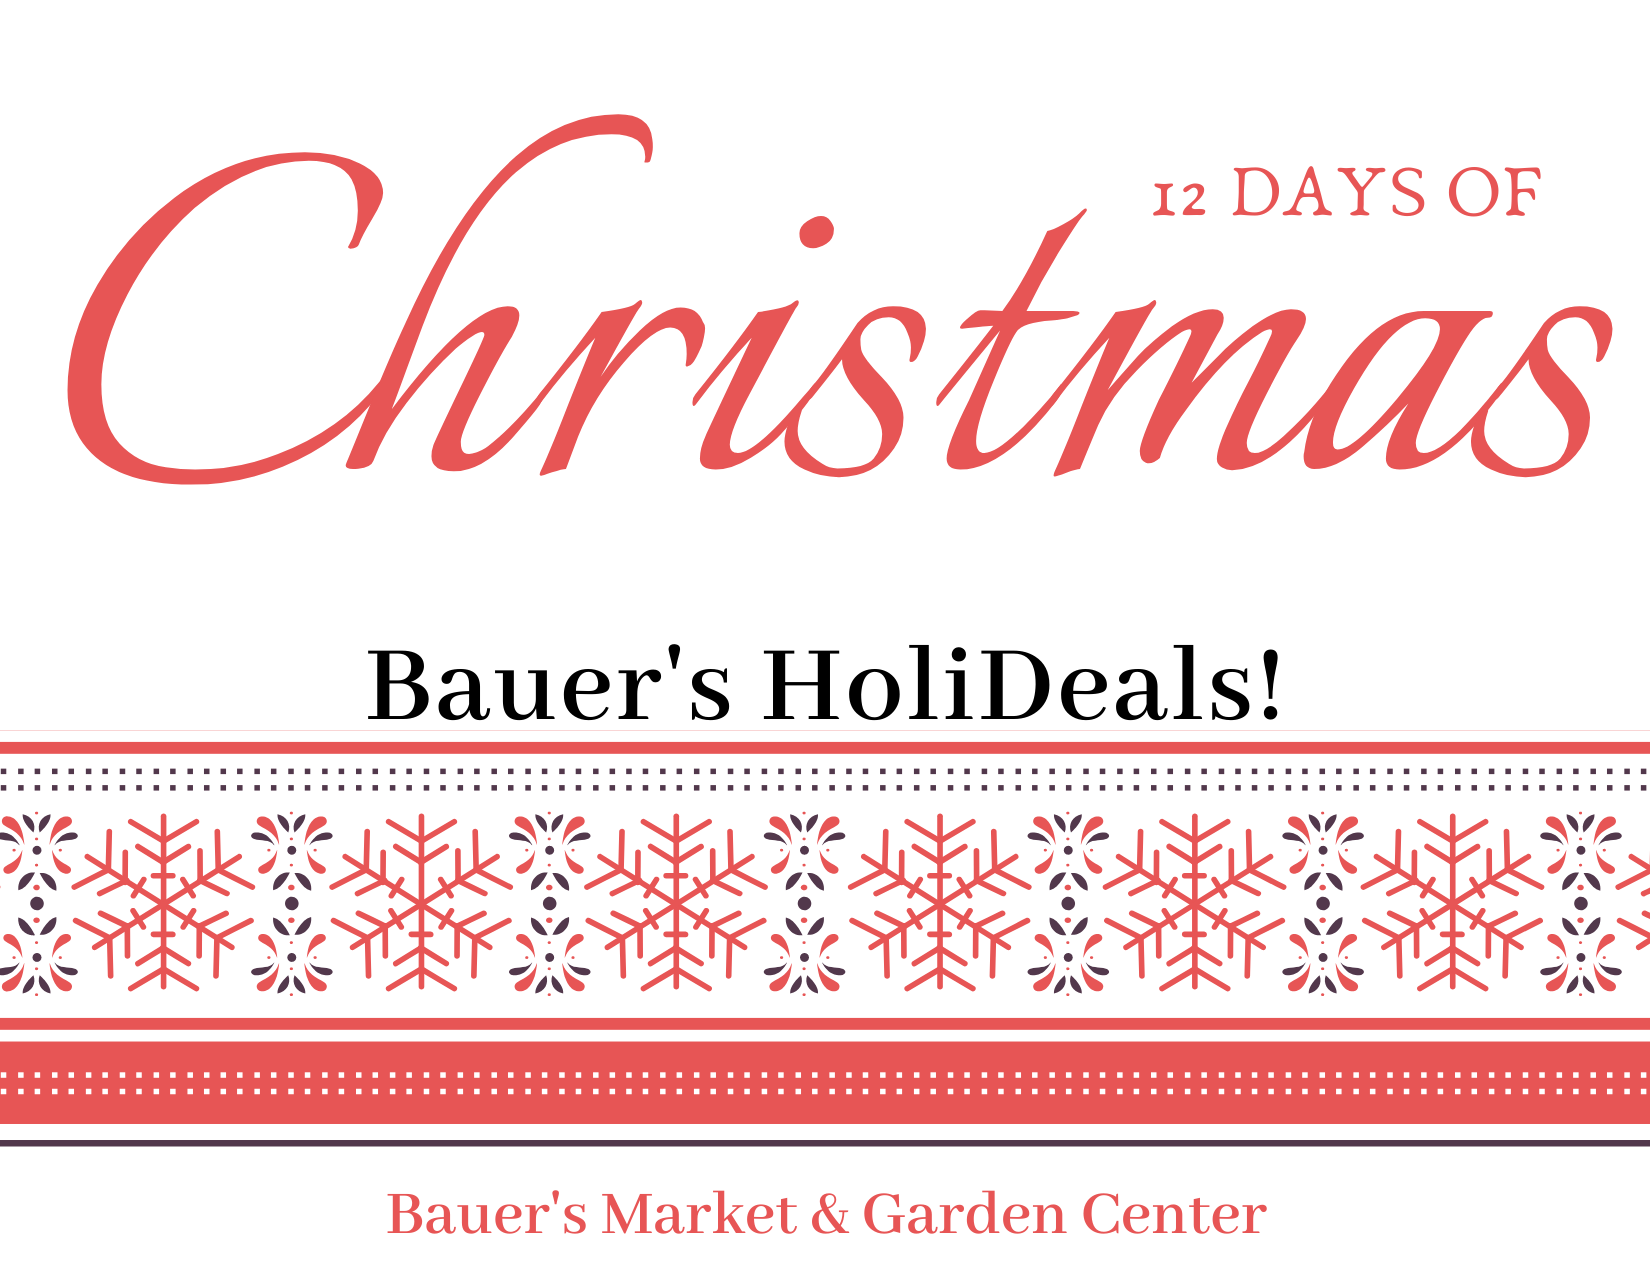 This Week at Bauer's Market & Garden Center | December 2, 2019